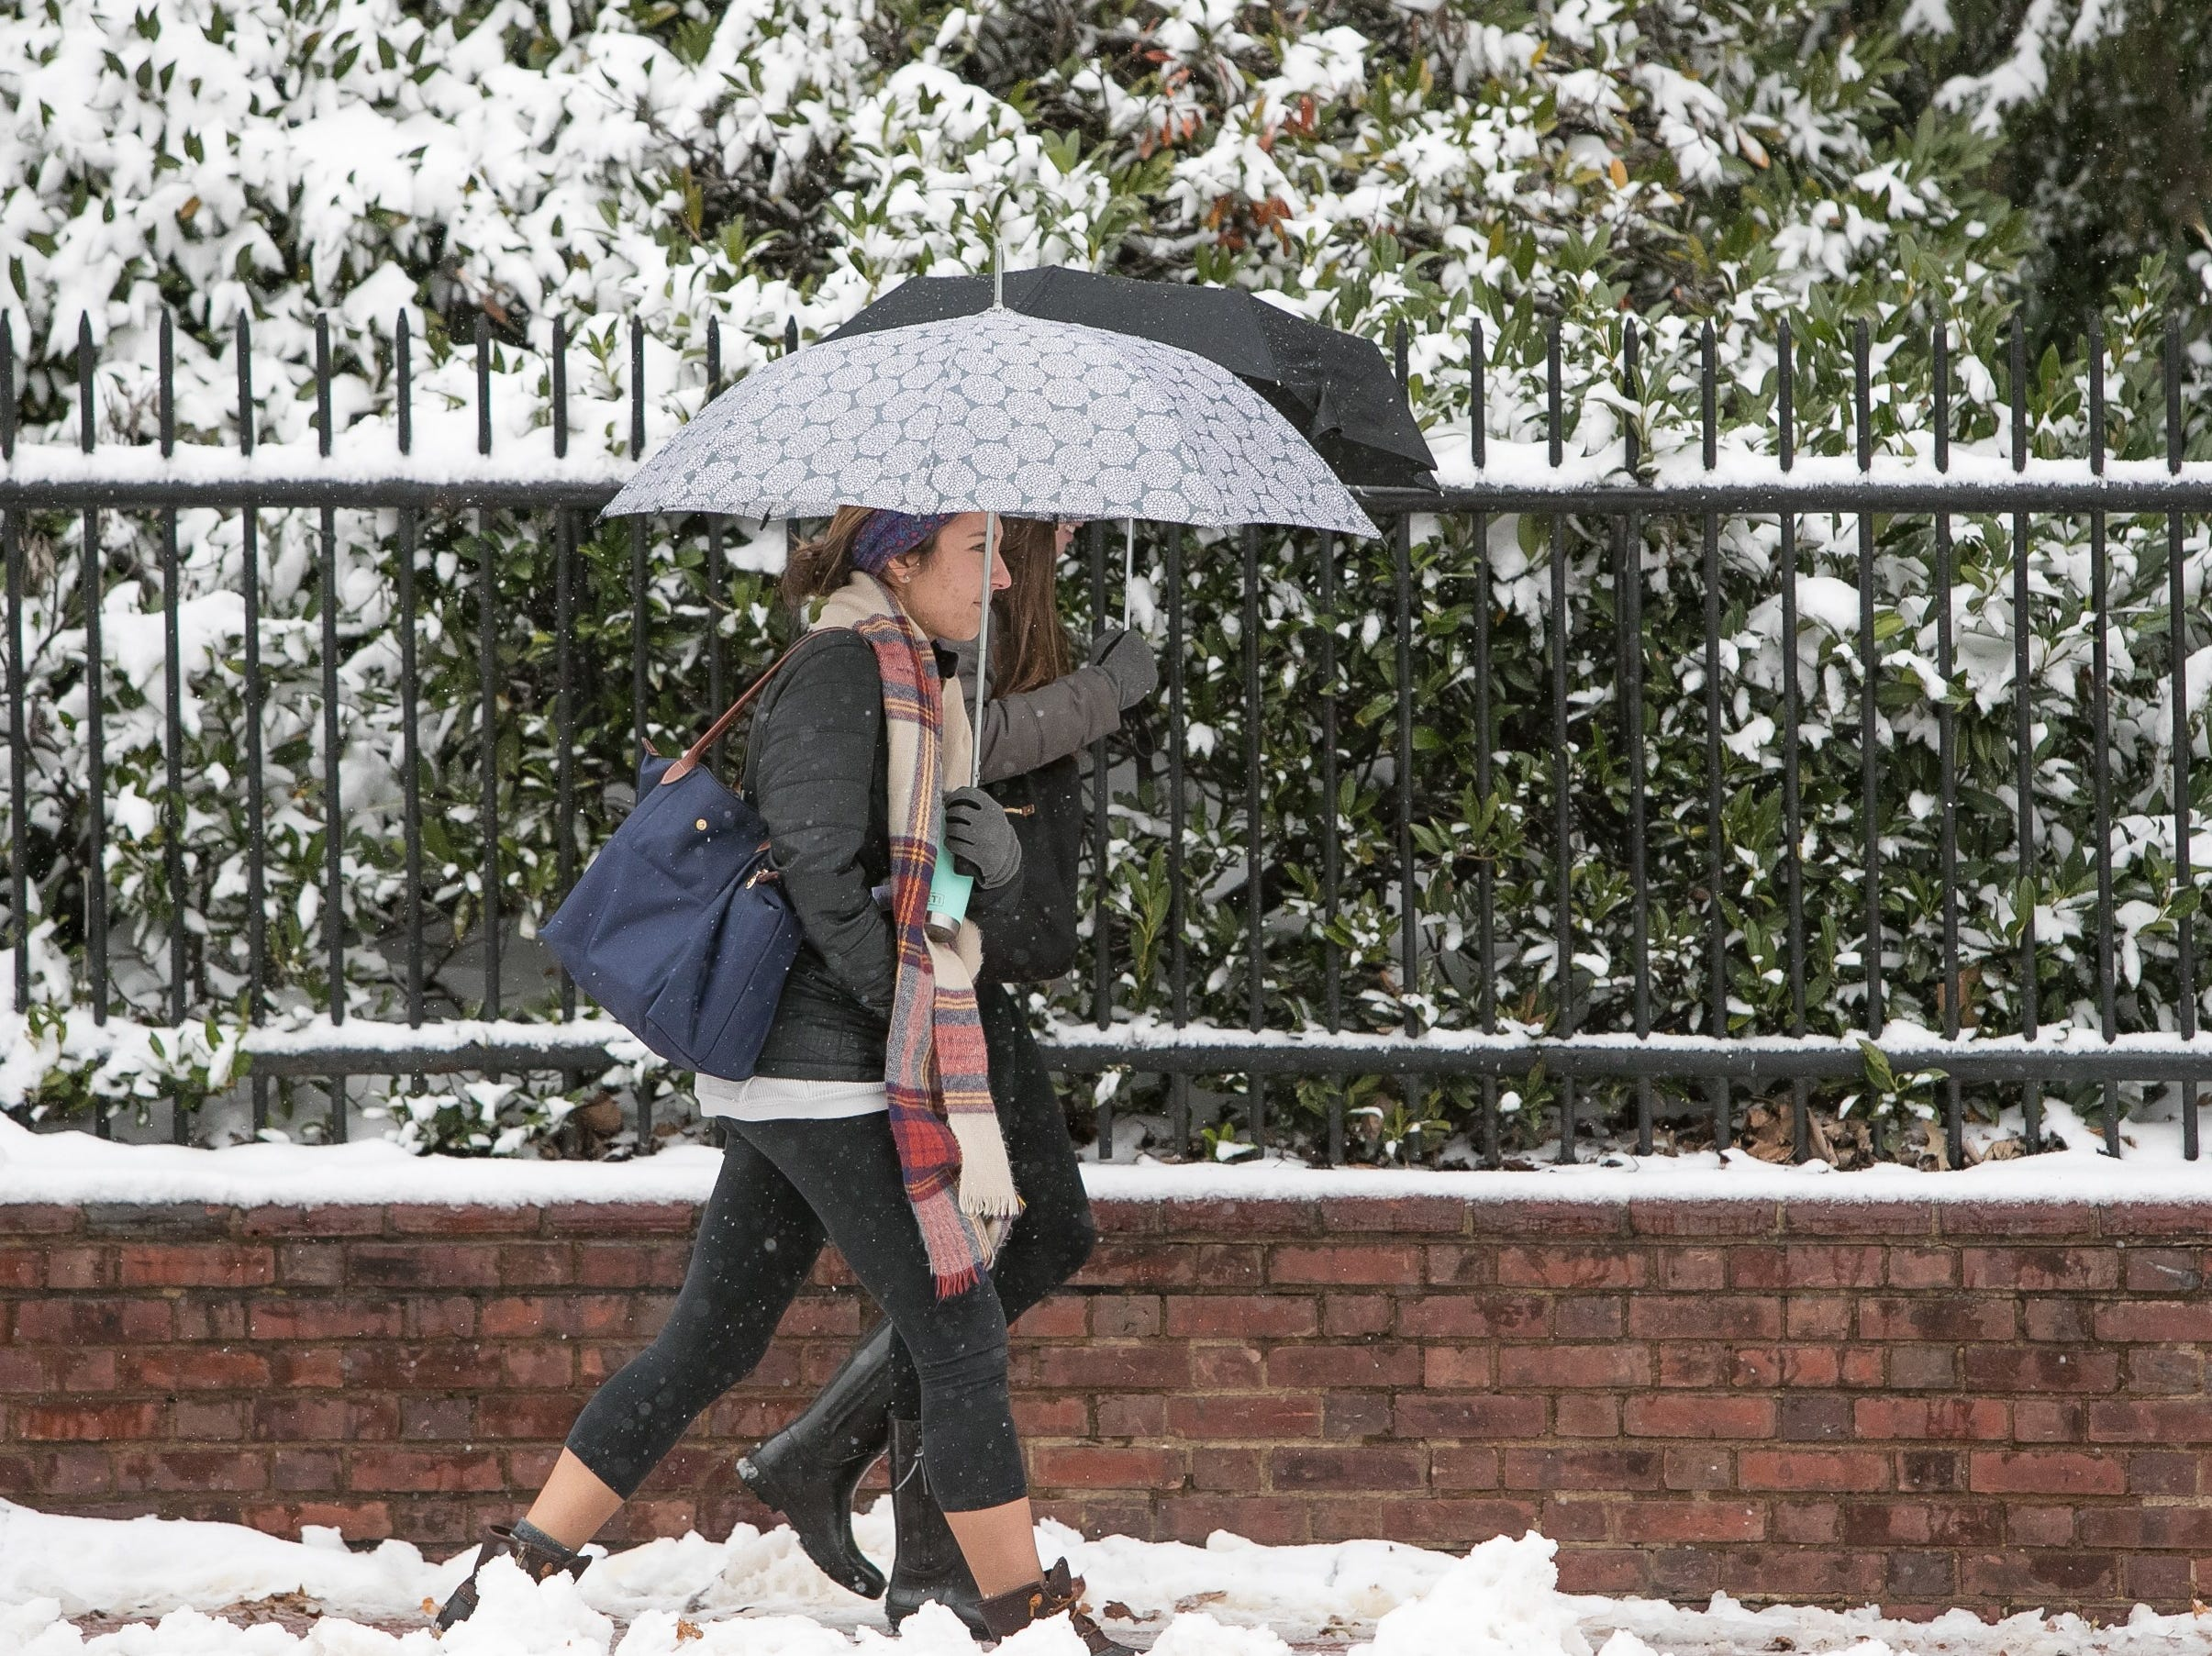 University of Delaware students walk through the snow as classes close at 2:30pm due to the weather.